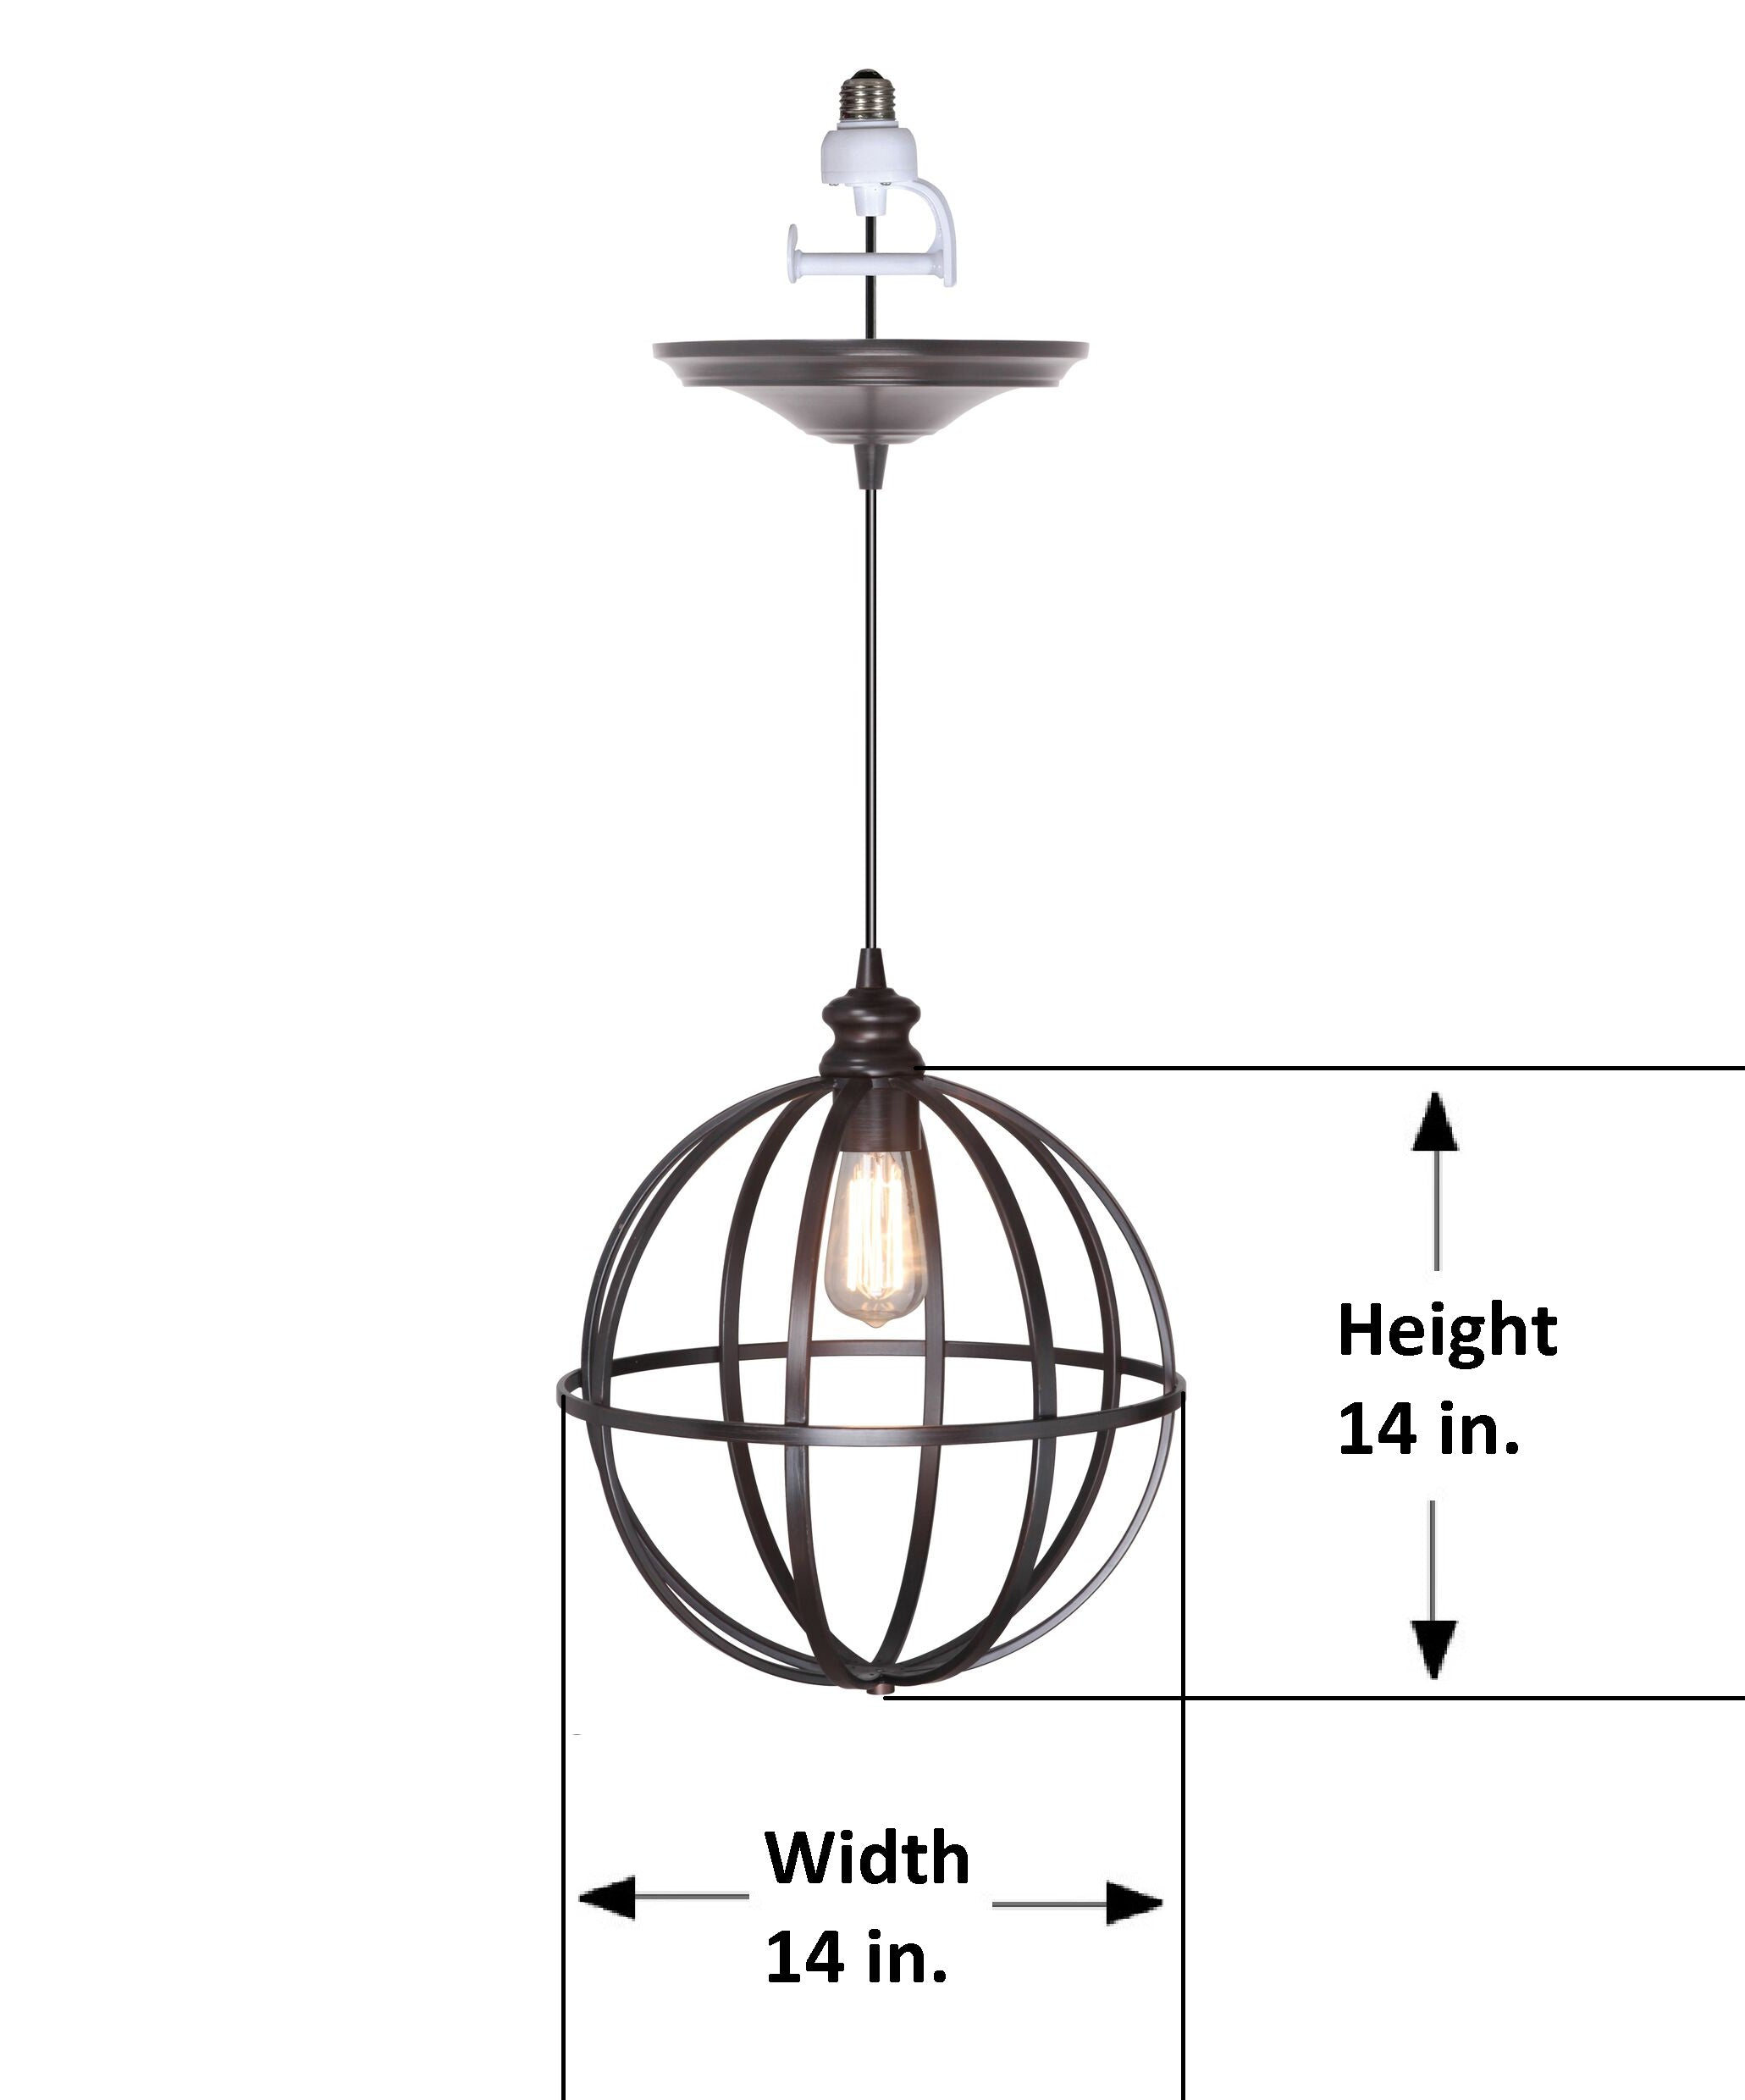 "Instant Pendant Recessed Light Conversion Kit Brushed Bronze Large 14"" Cage Shade PBN-4834-0011 - Worth Home Products"